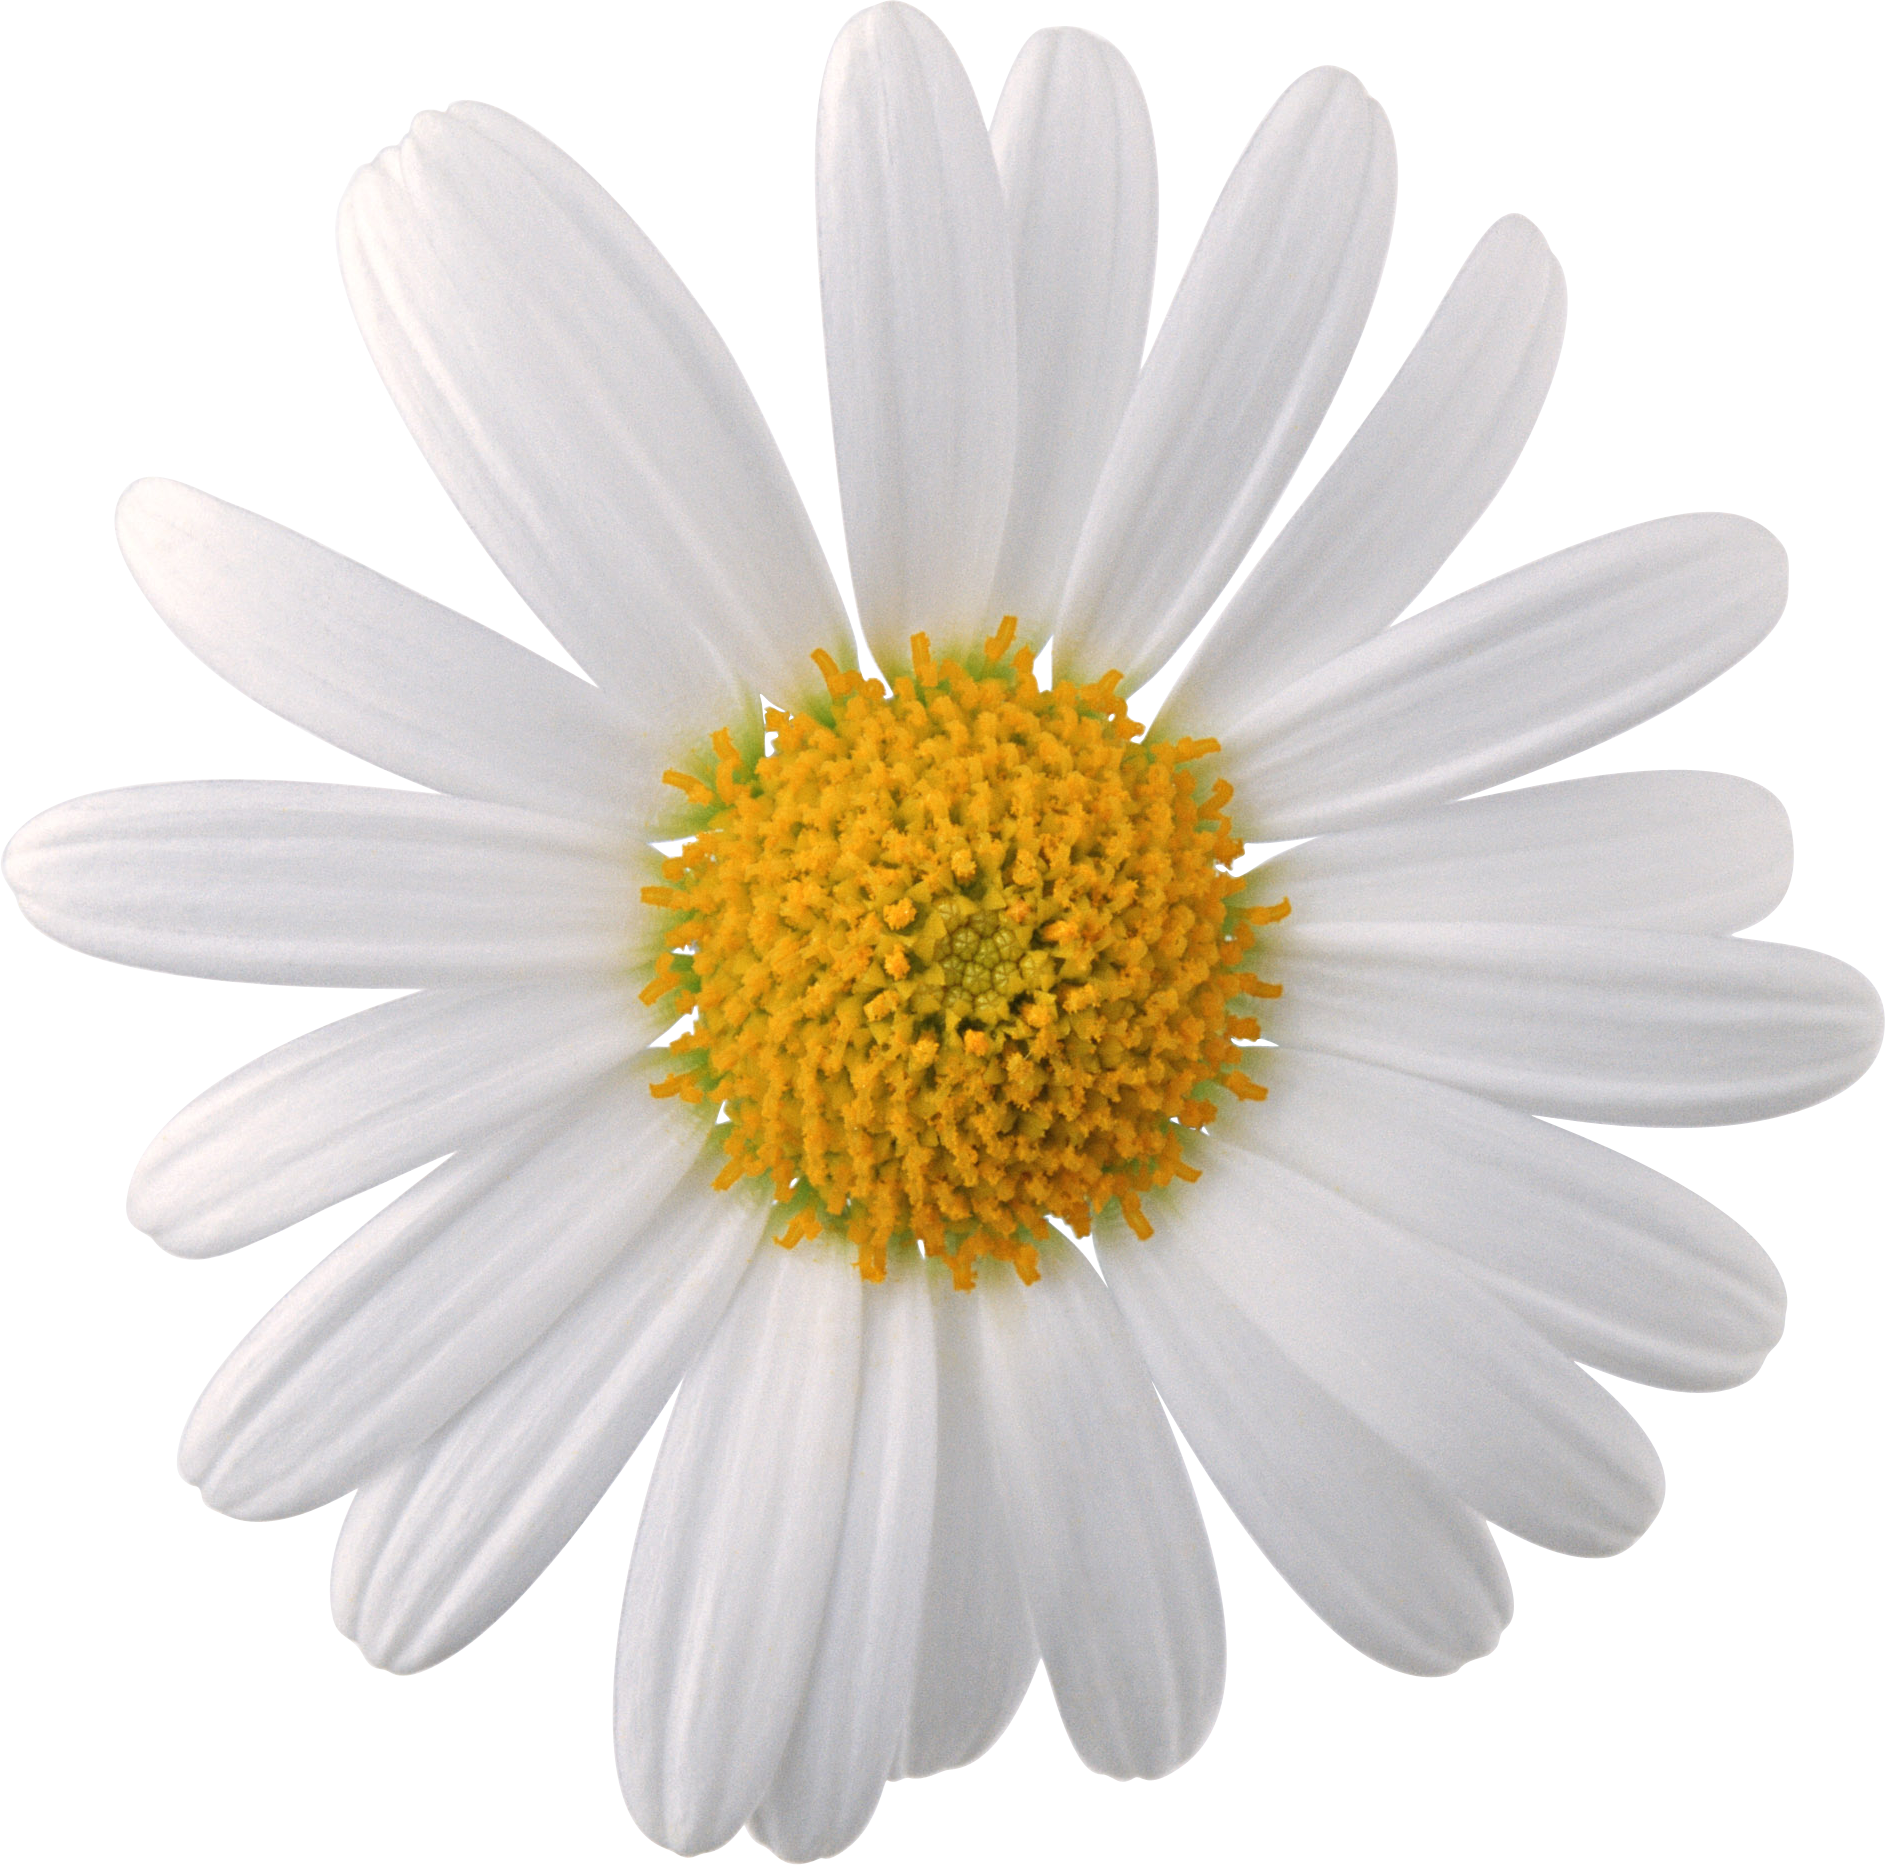 Camomile image free picture. Daisy flower png